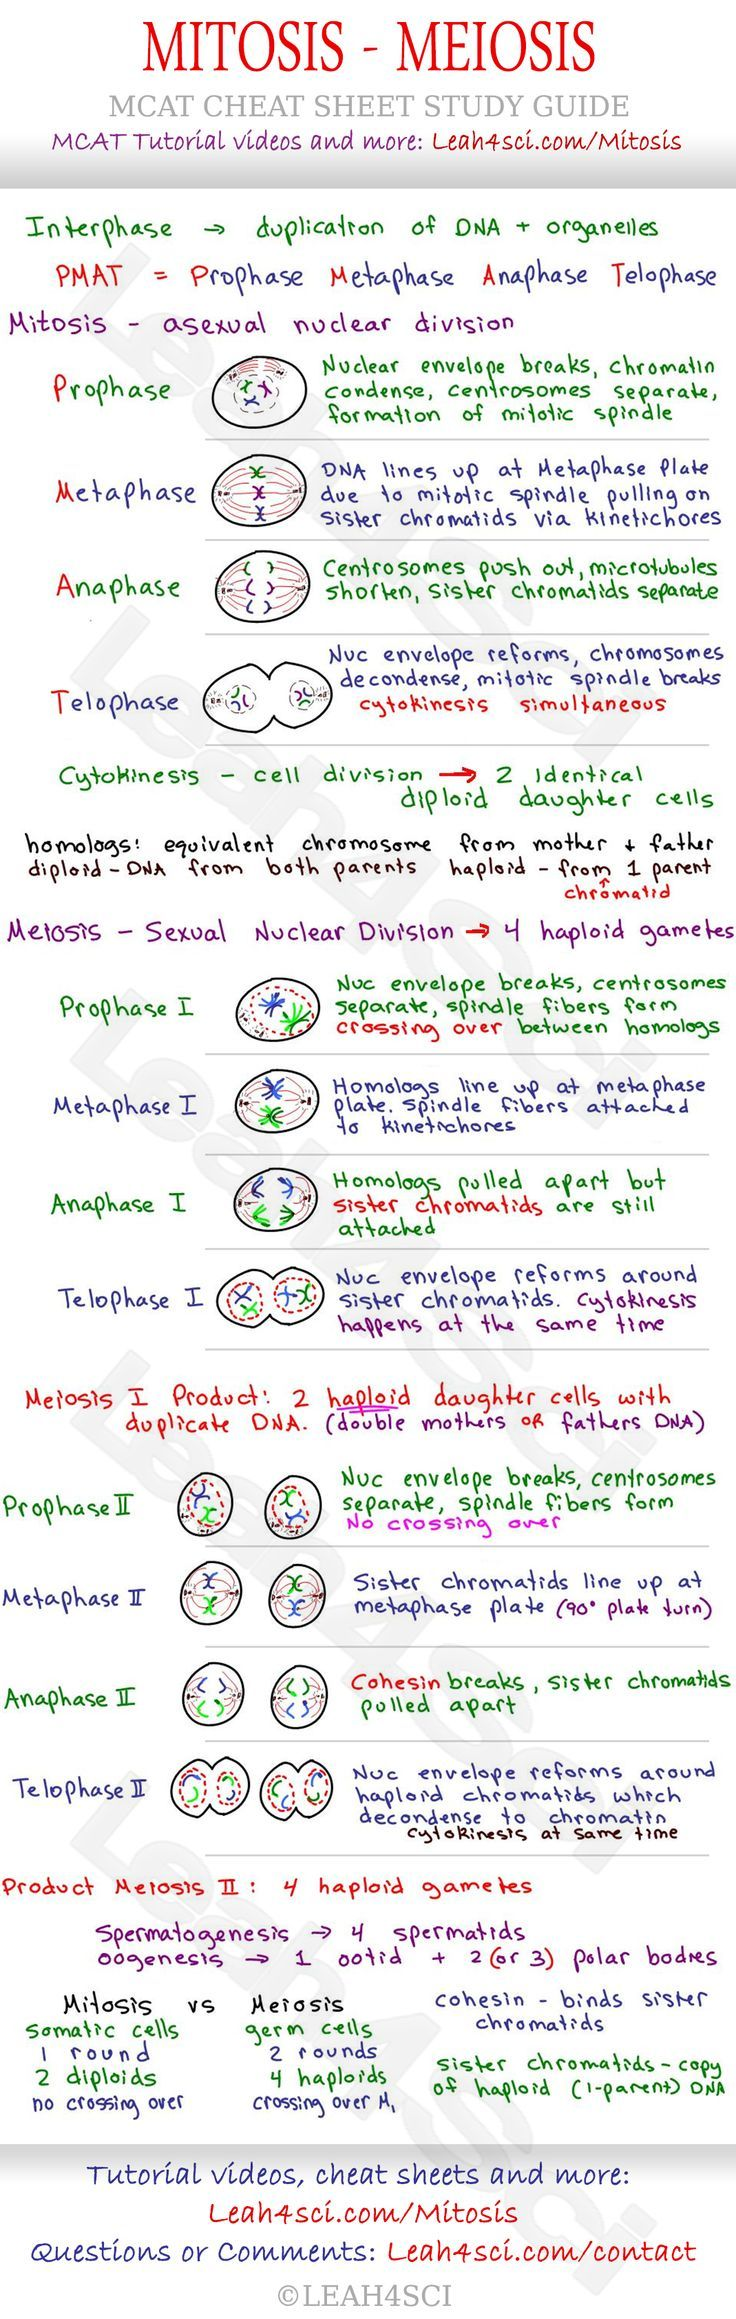 Mitosis and Meiosis MCAT Cheat Sheet Study Guide - learn what happens in each step: Prophase, Metaphase, Anaphase, Telophase and how they all tie together